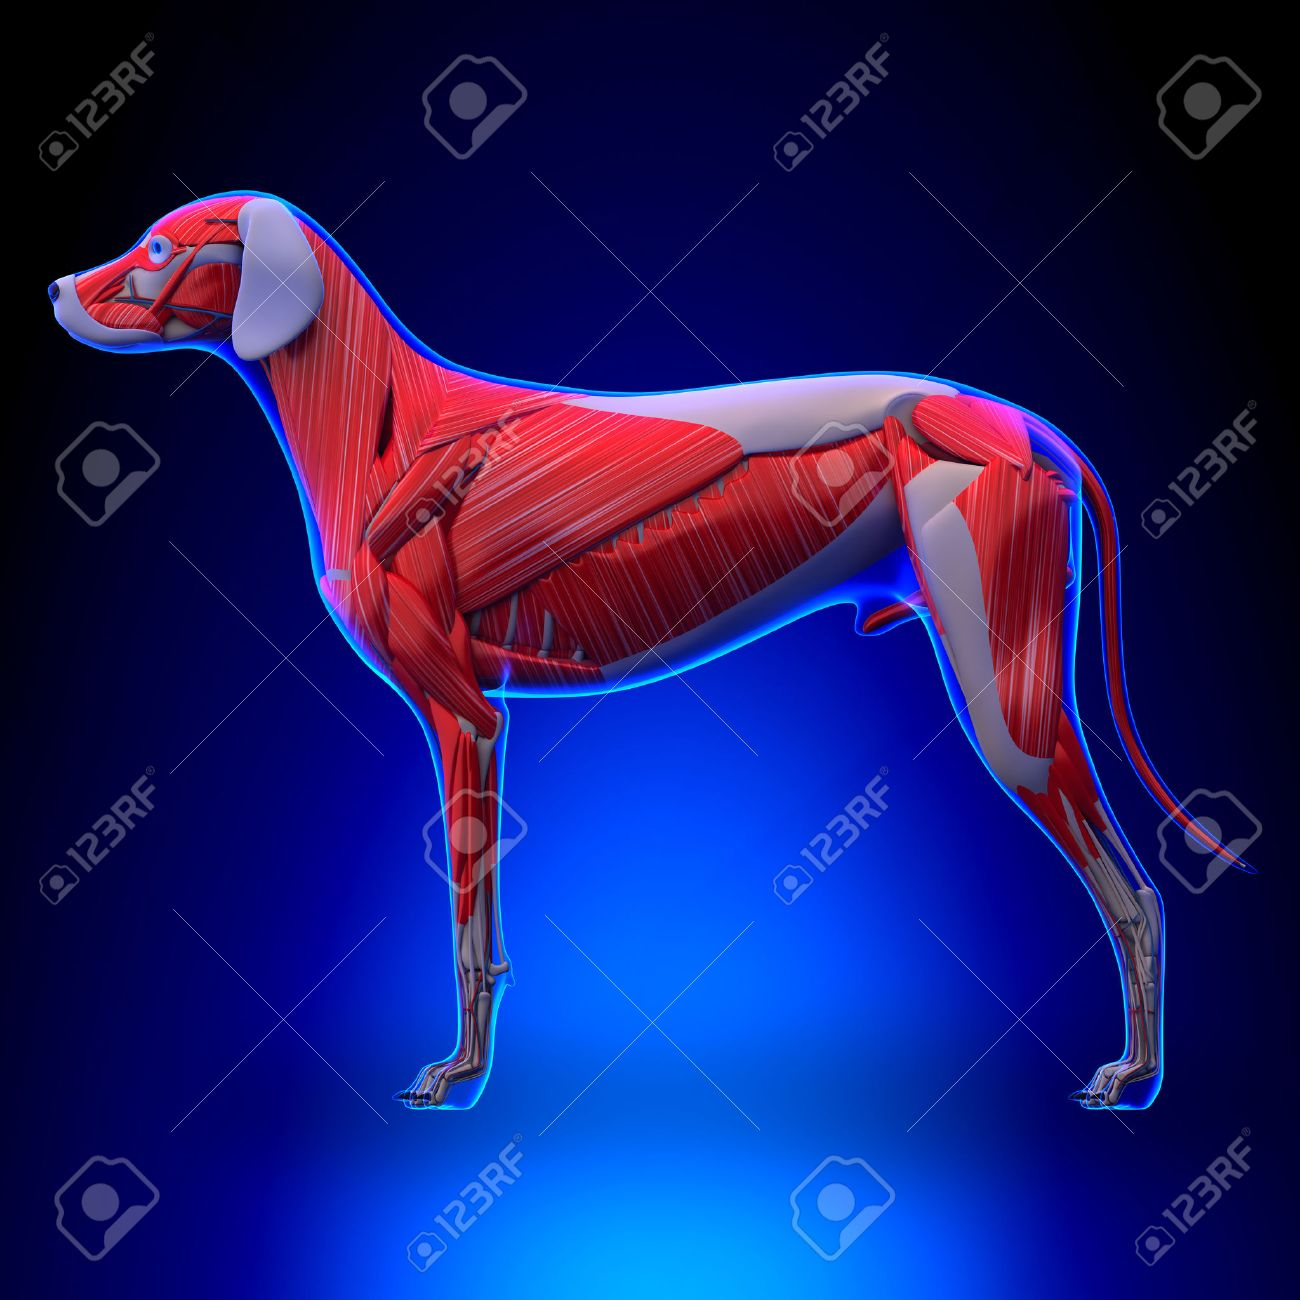 Dog Muscles Anatomy - Muscular System Of The Dog Stock Photo ...